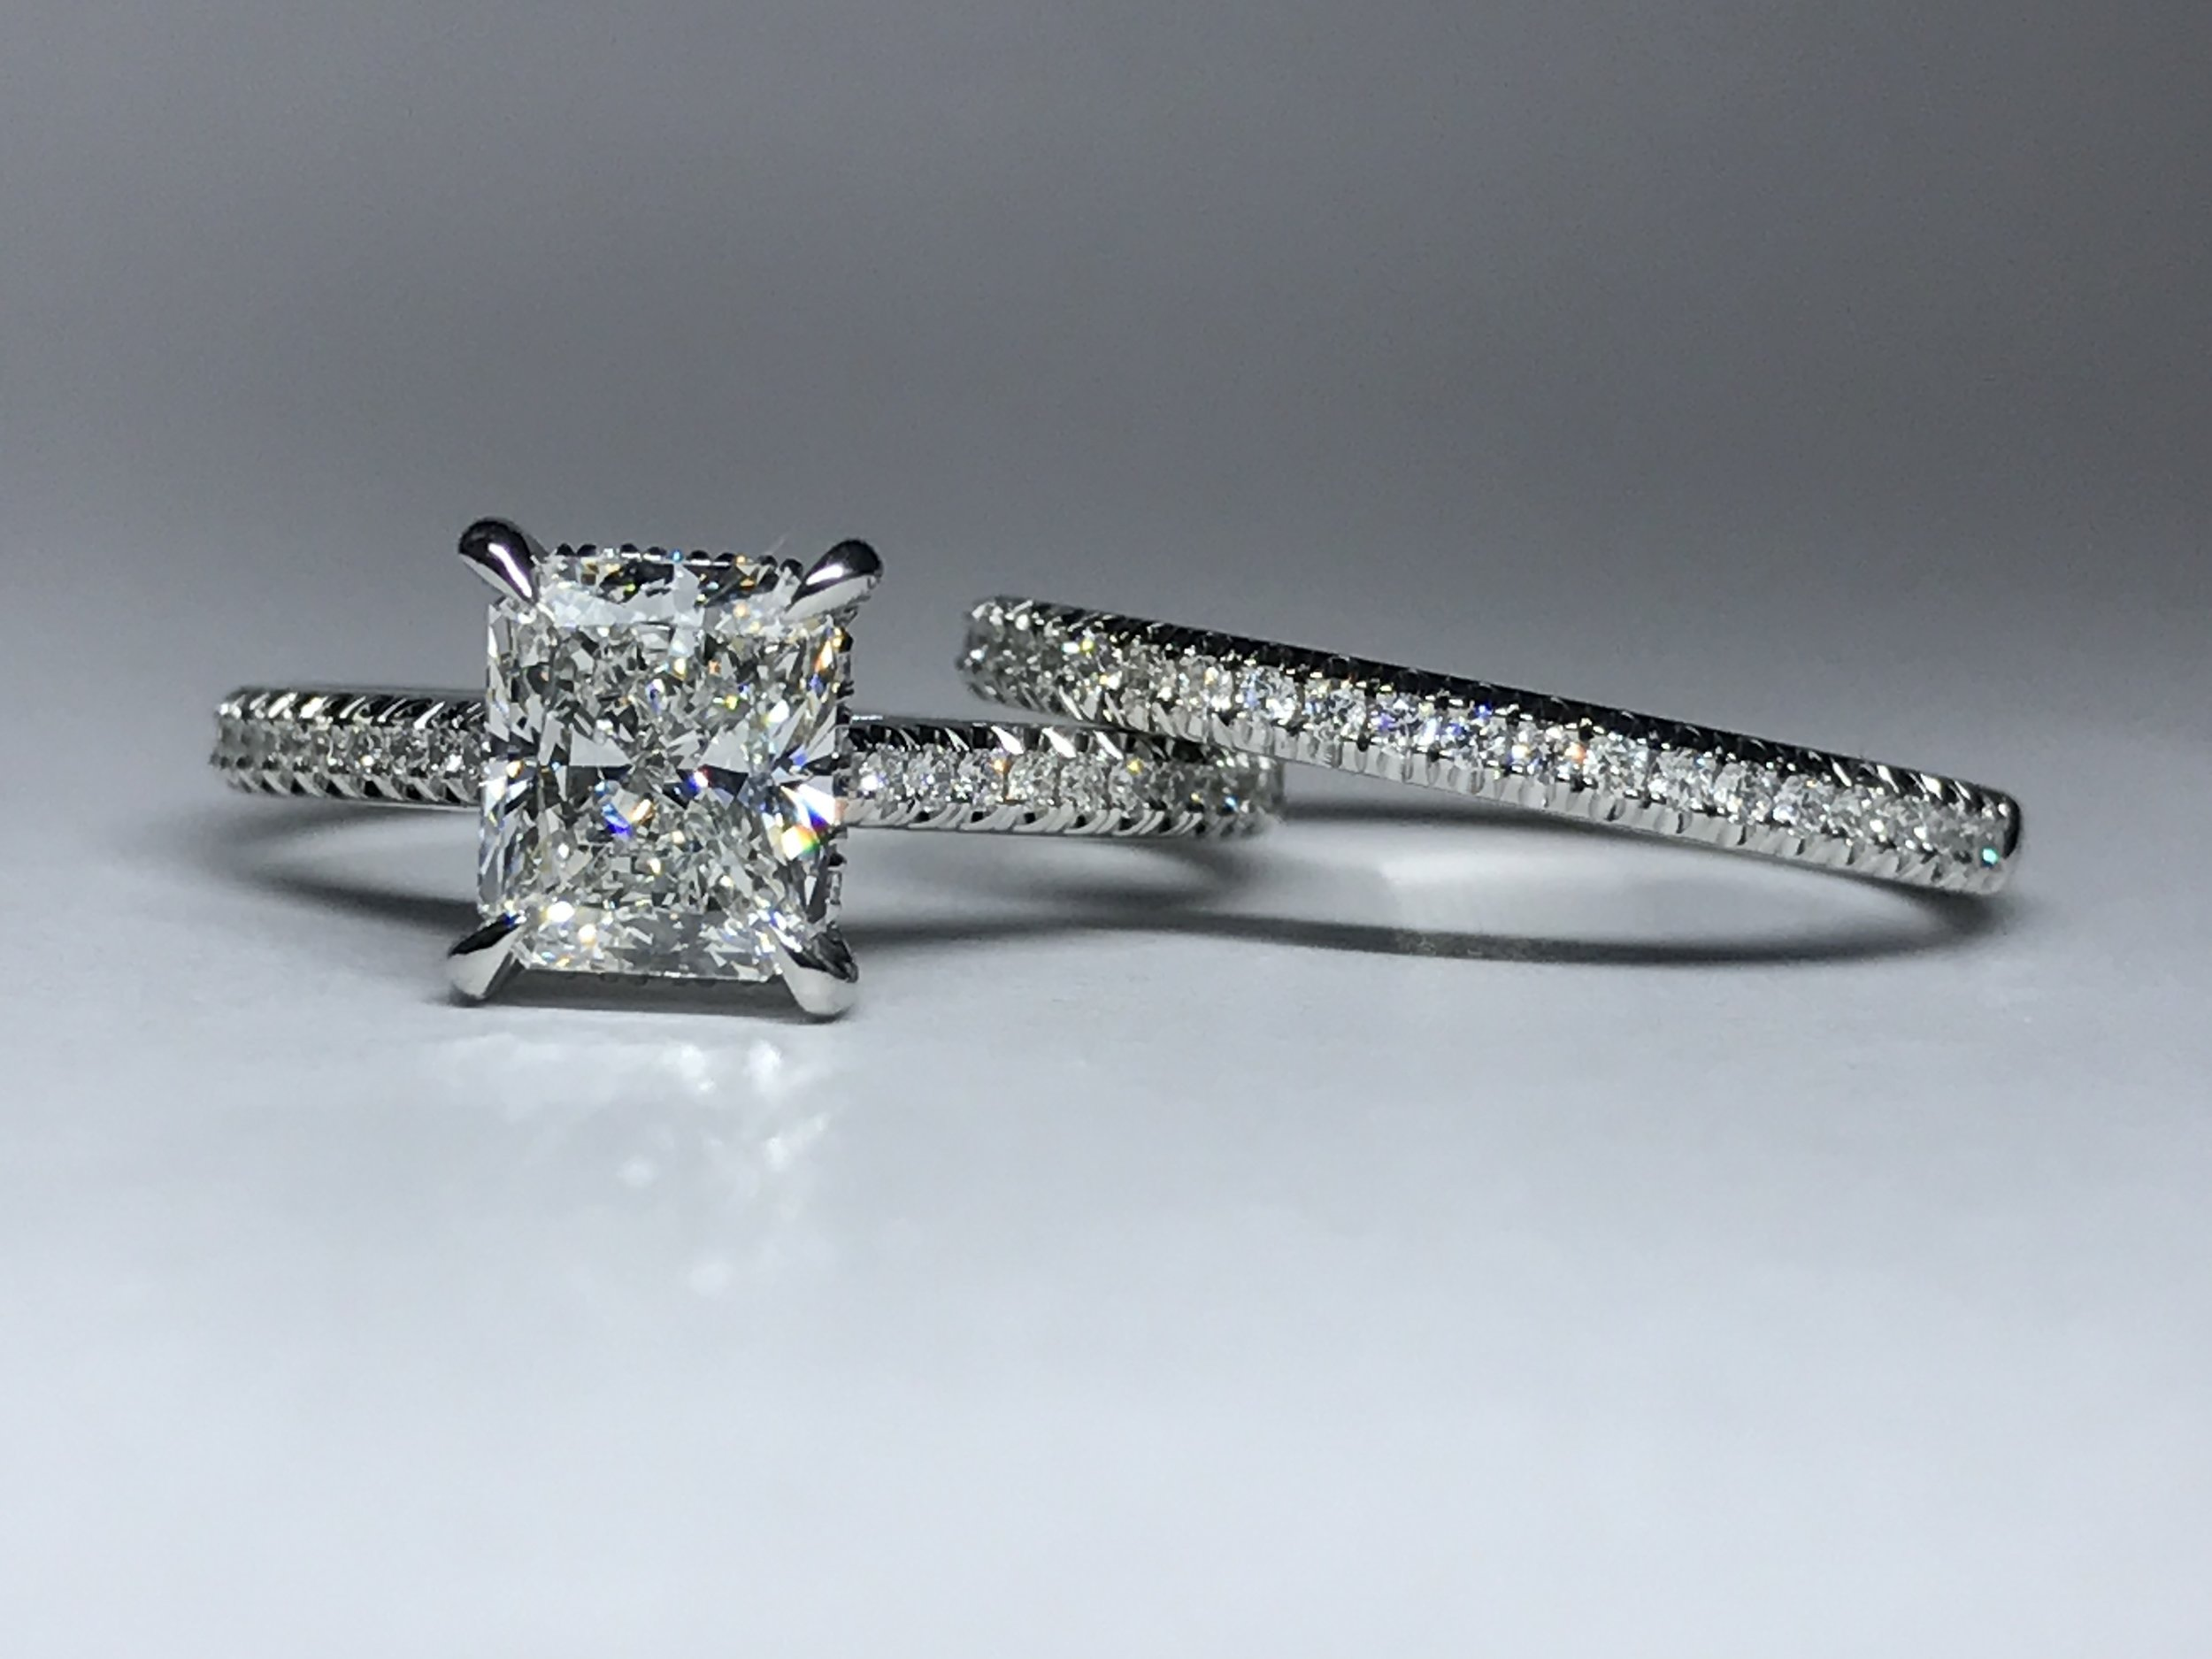 Copy of Bespoke mount made for customers own diamond with matching diamond set band. Made in Chichester, England.